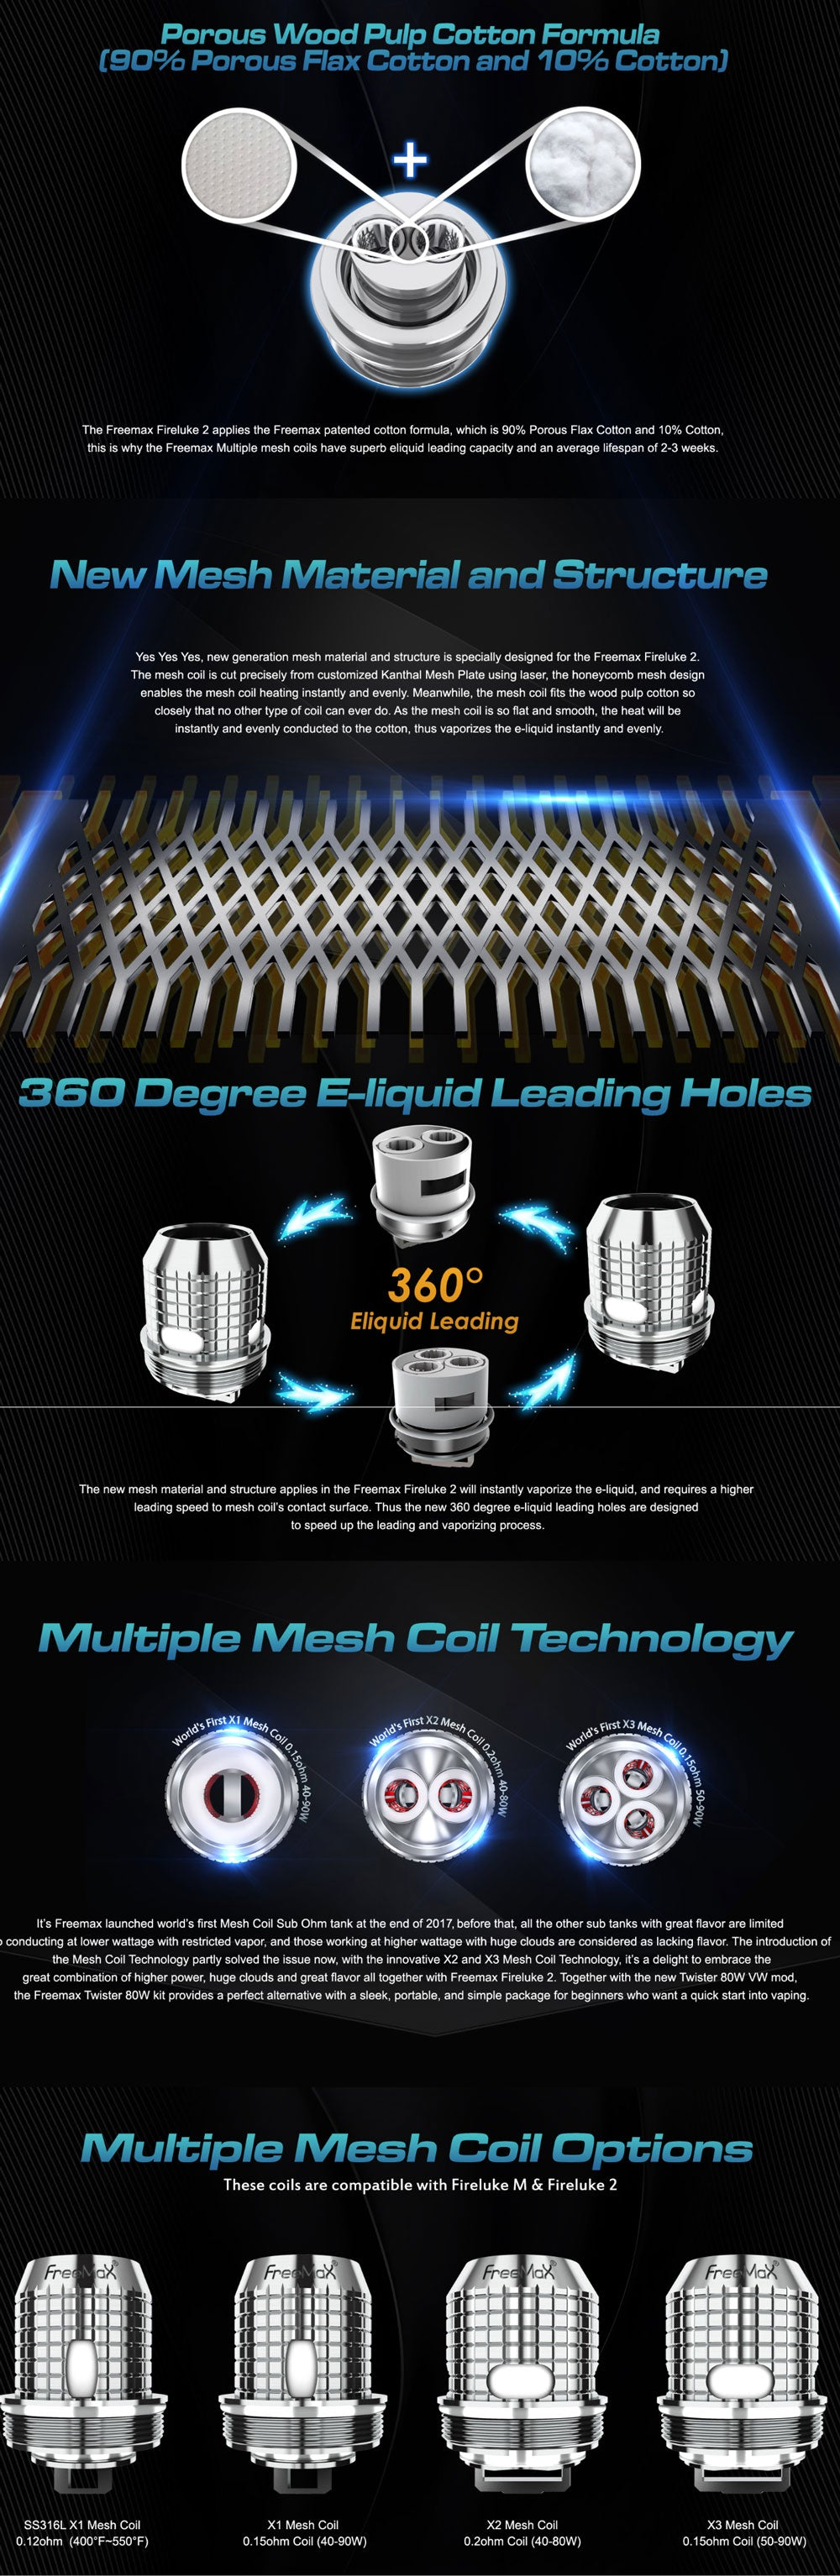 Freemax Twister Coils with pictures of cores, mesh and wattages advised